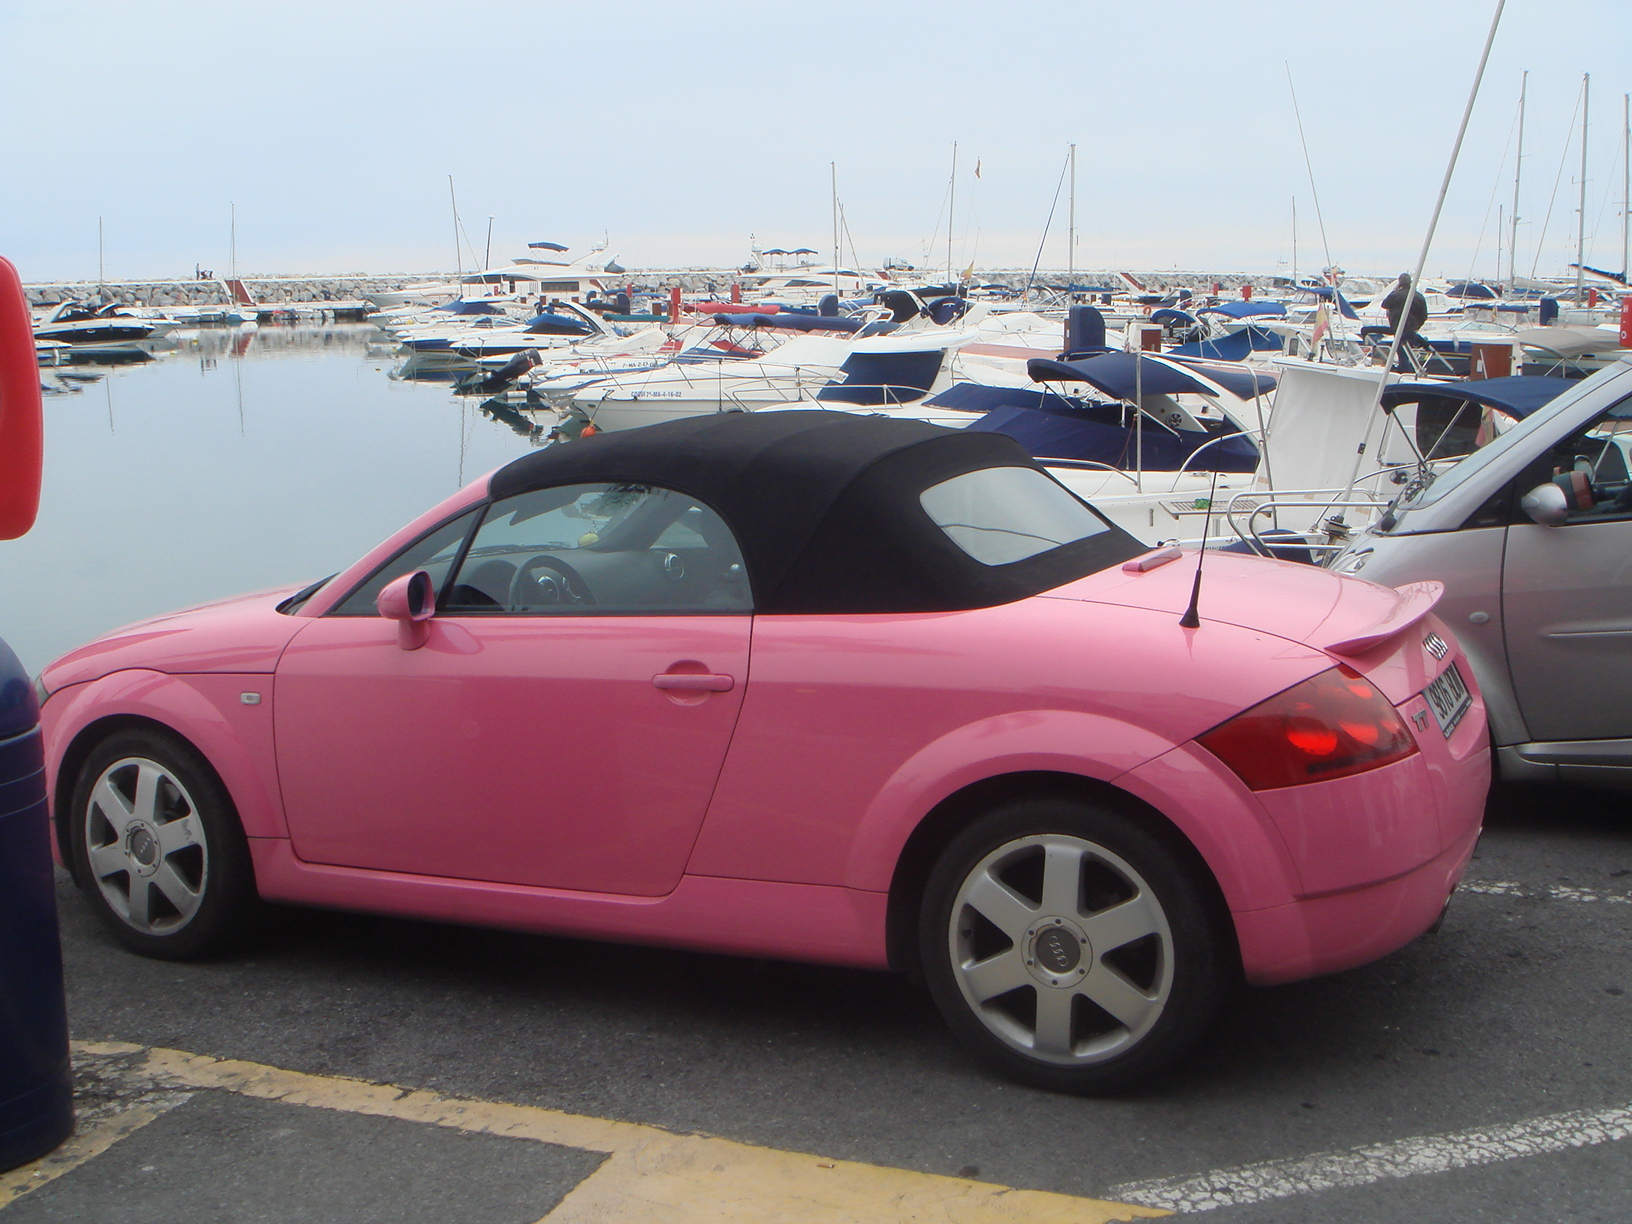 Audi Tt Rossa Pin Puerto Banus At Night On Pinterest